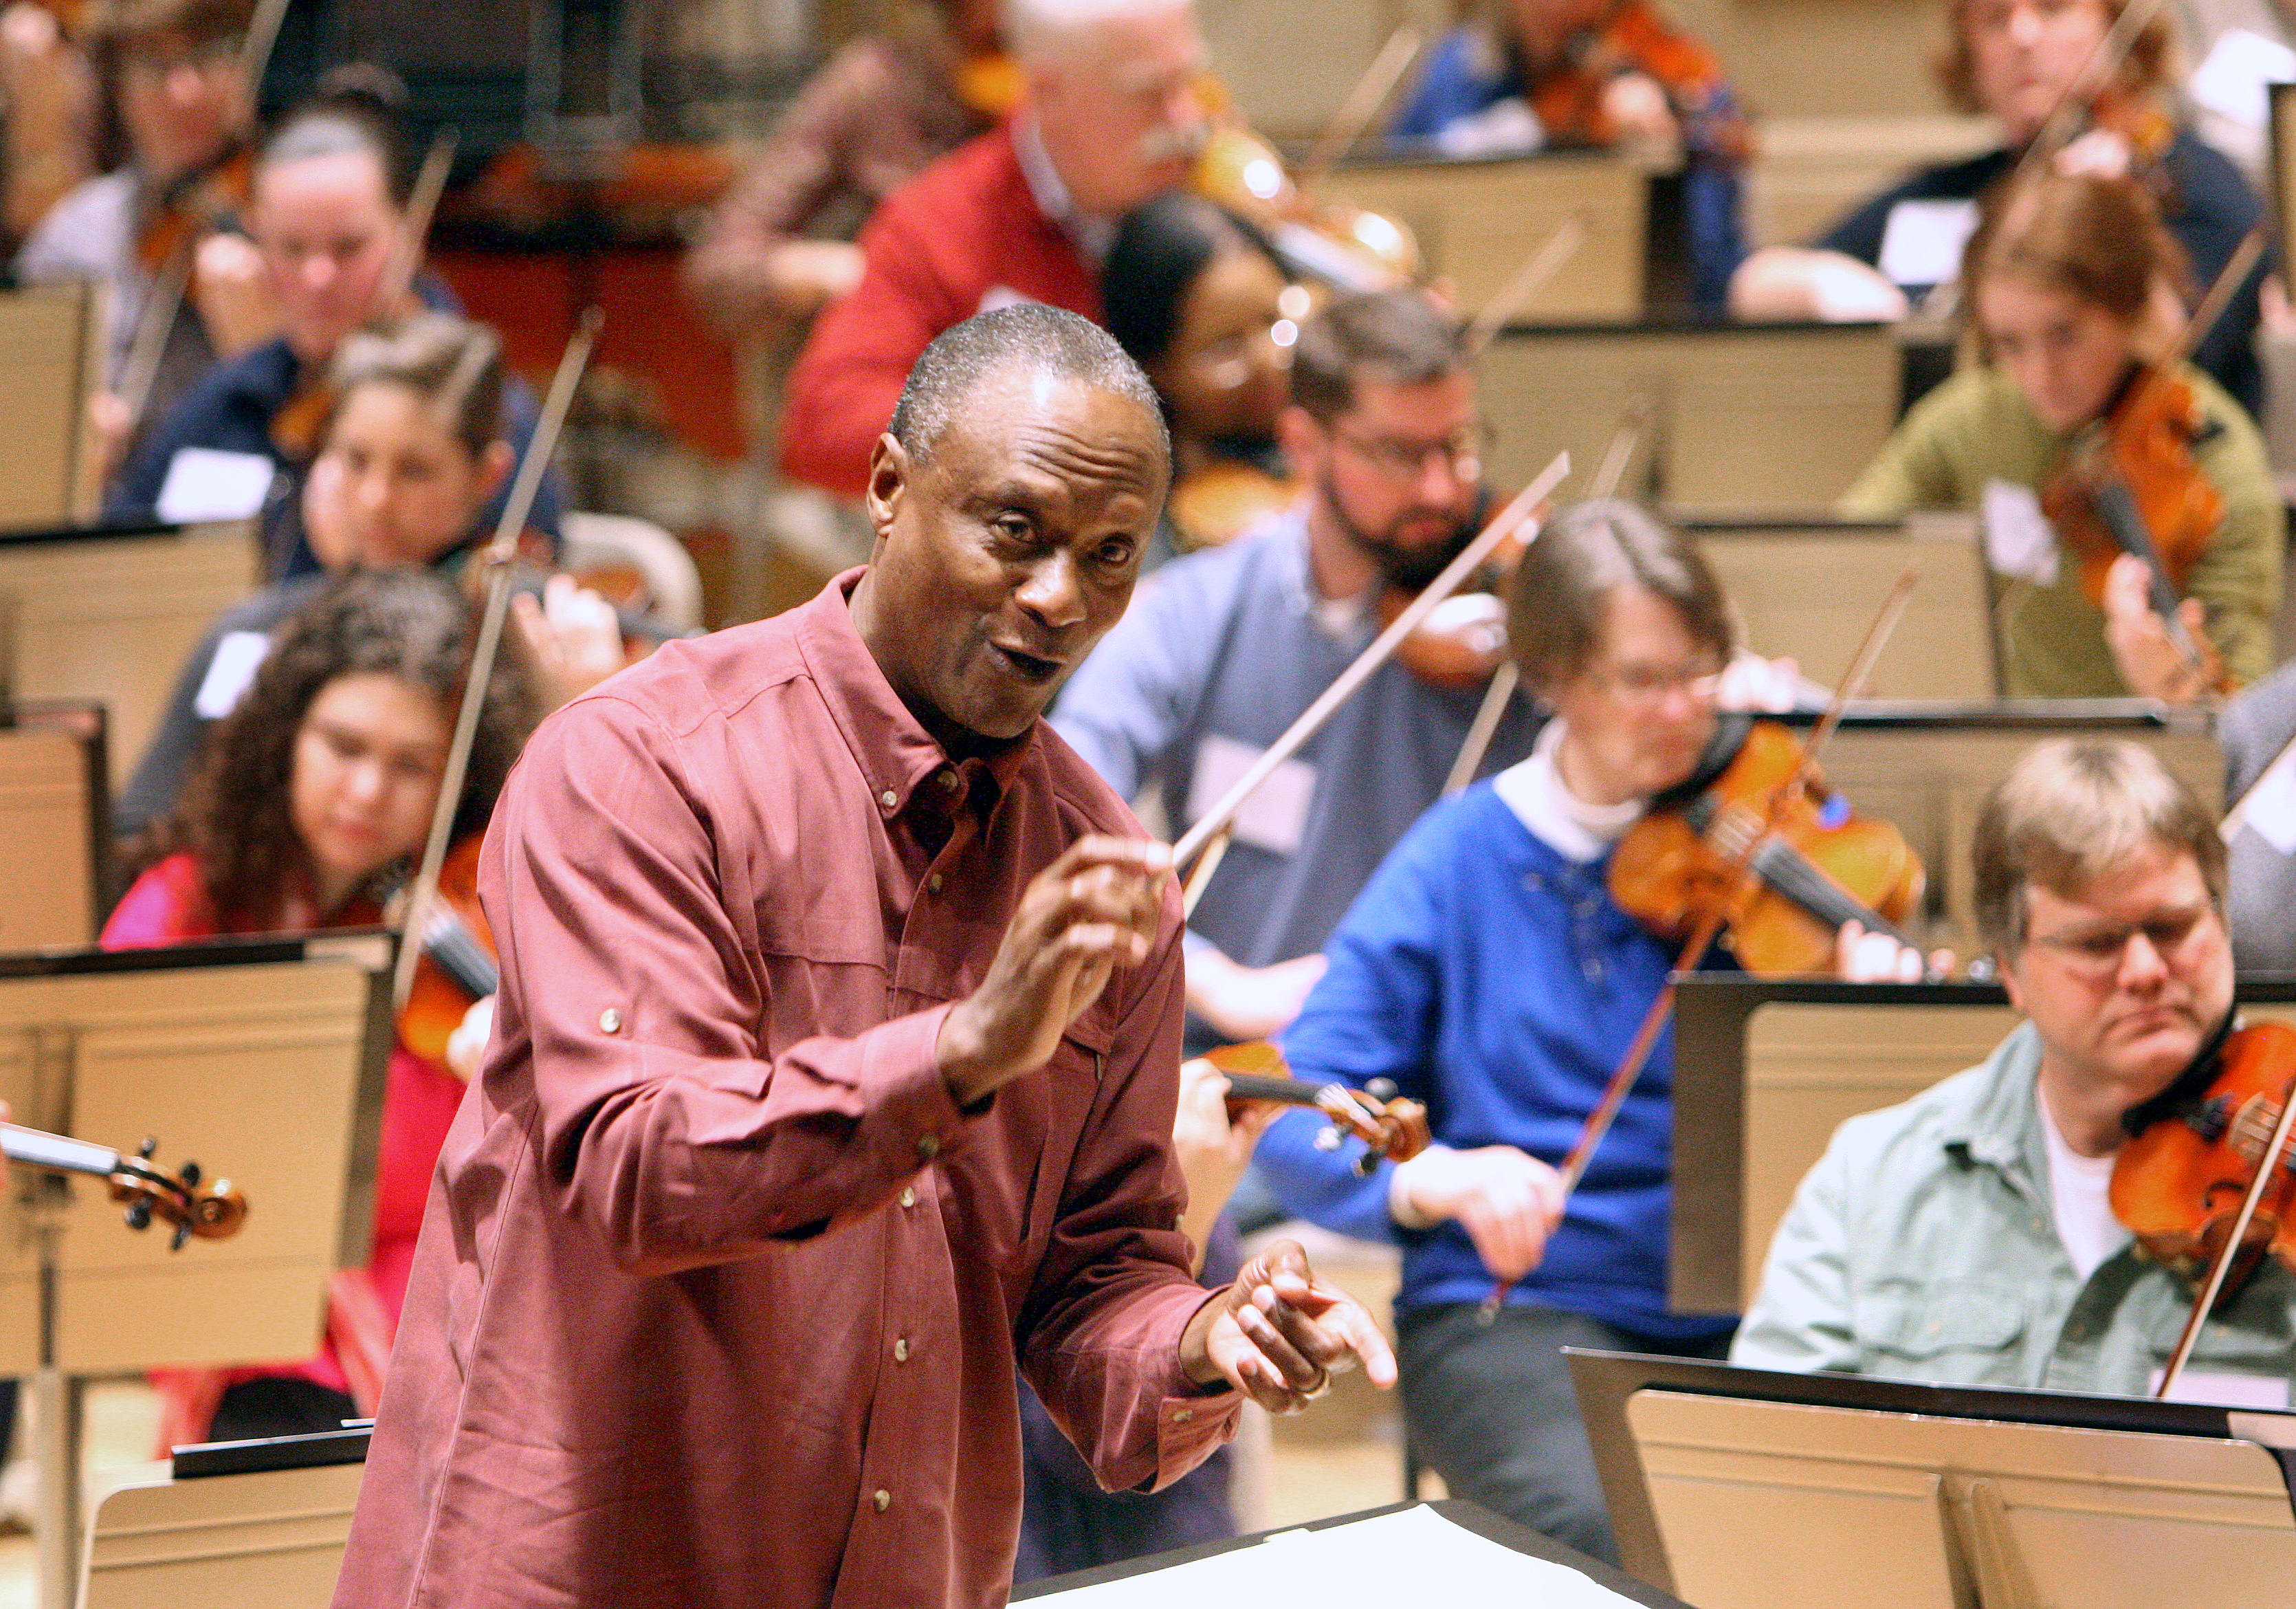 Lifting the baton to bring composers of color into the canon